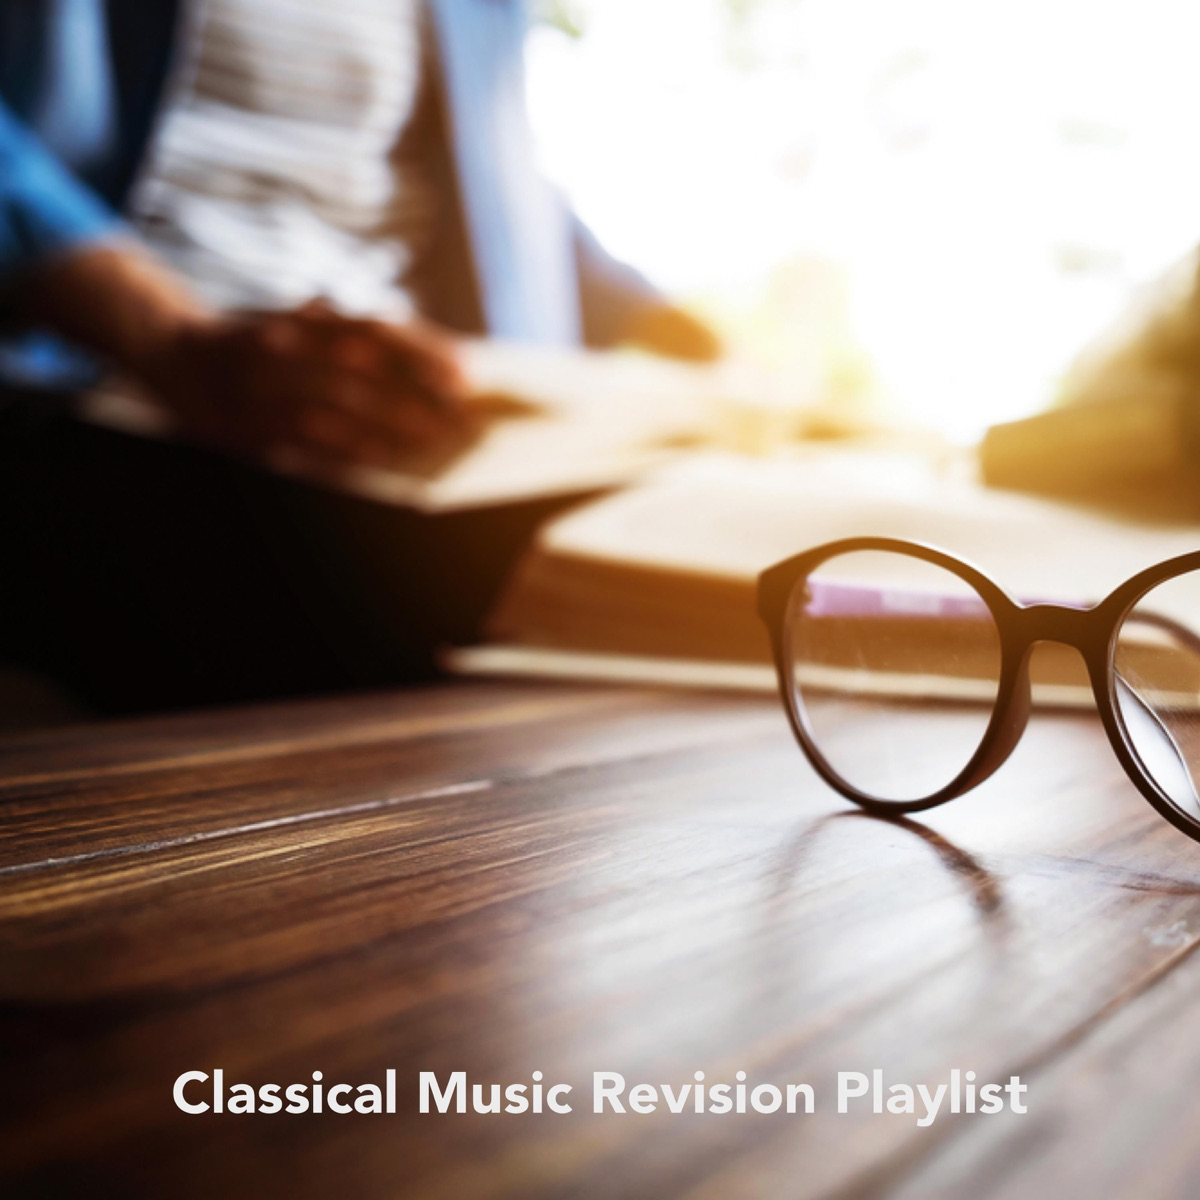 Classical Music Revision Playlist Album Cover by Various Artists